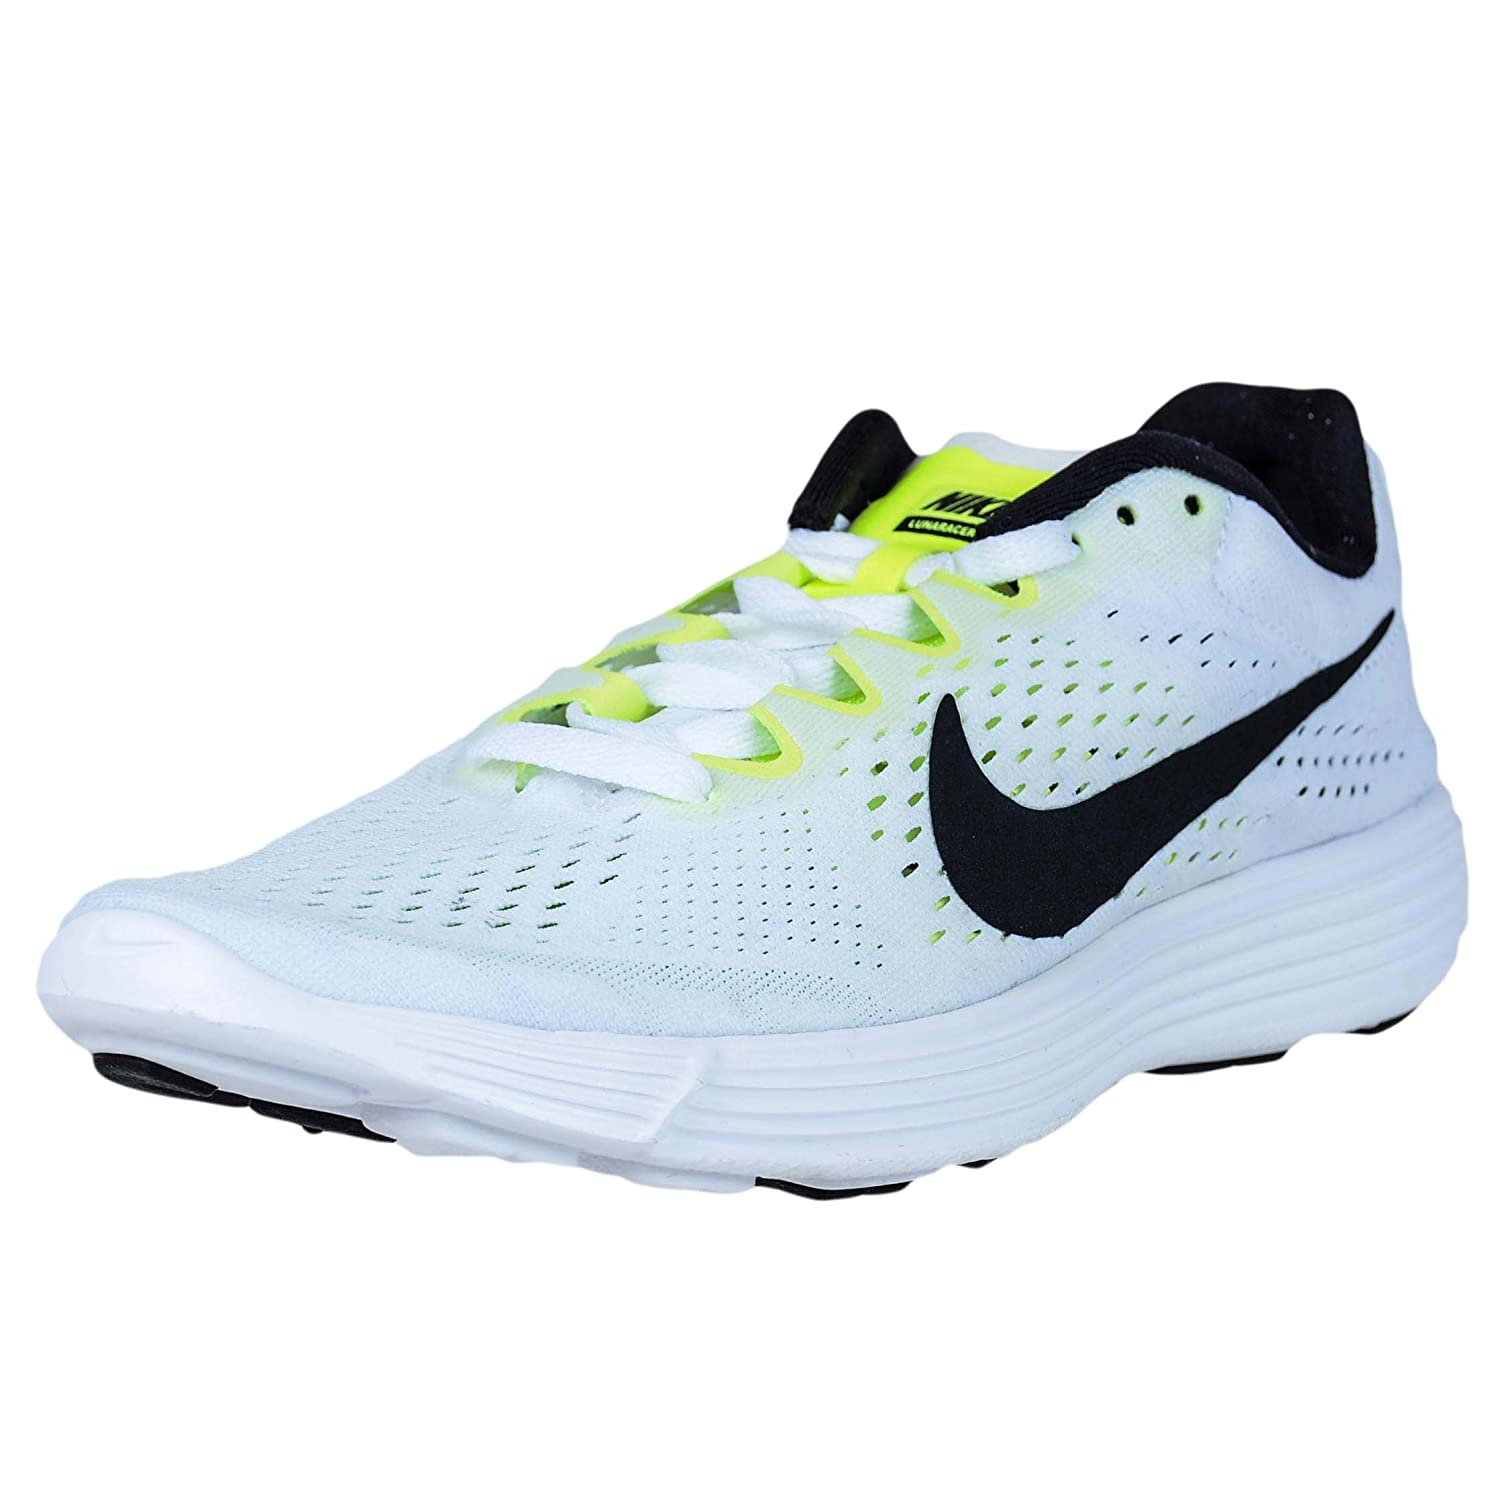 10ea05f9836320 NIKE Men s Lunaracer 4 Running Shoes